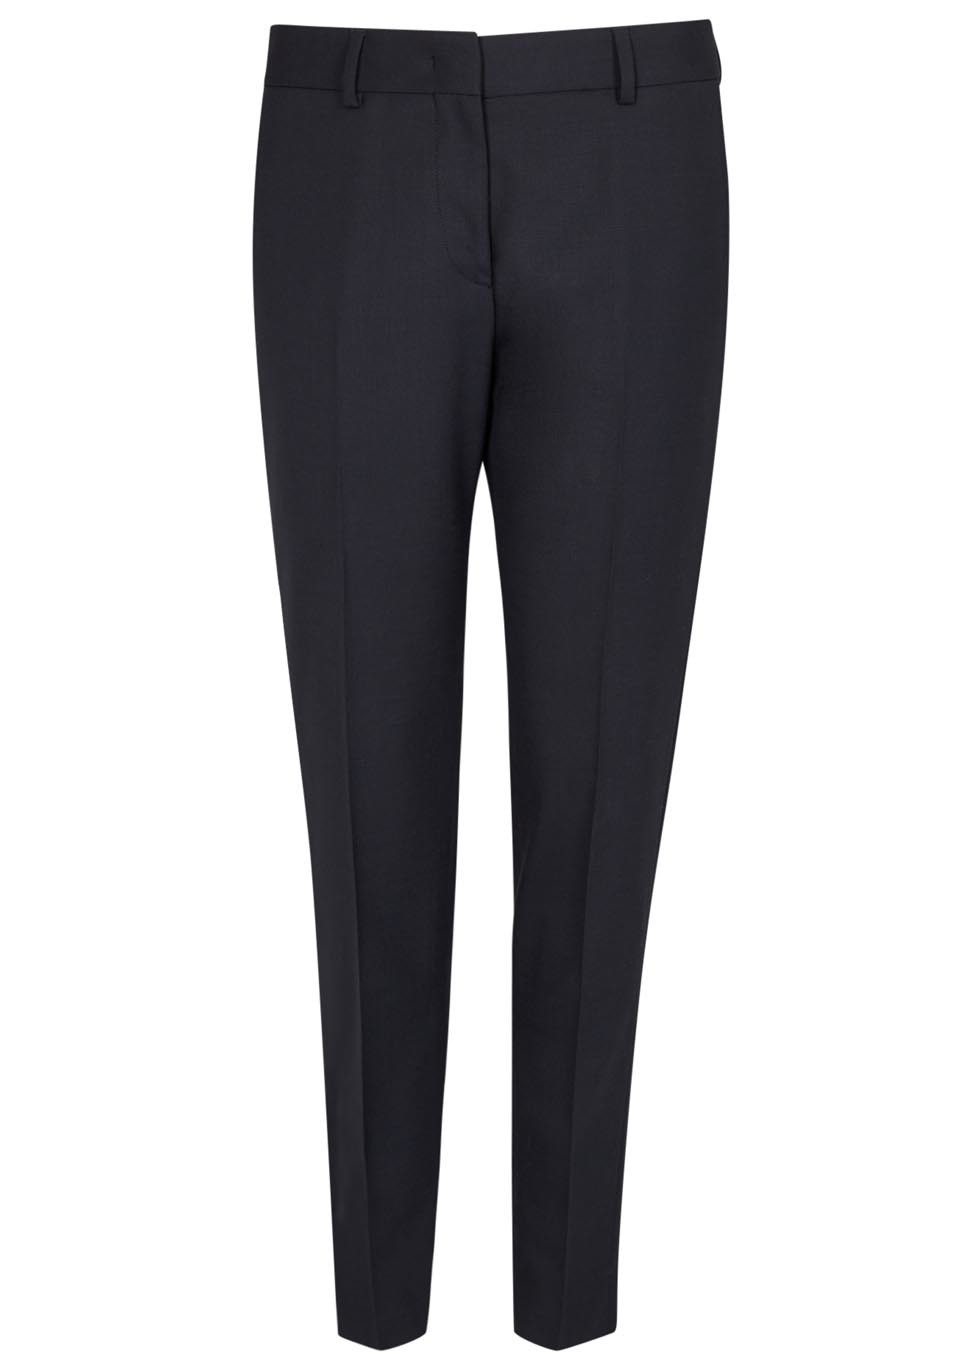 Navy Cropped Wool Trousers - length: standard; pattern: plain; waist: mid/regular rise; predominant colour: navy; occasions: work; fibres: wool - stretch; waist detail: feature waist detail; fit: slim leg; pattern type: fabric; texture group: woven light midweight; style: standard; wardrobe: basic; season: a/w 2016